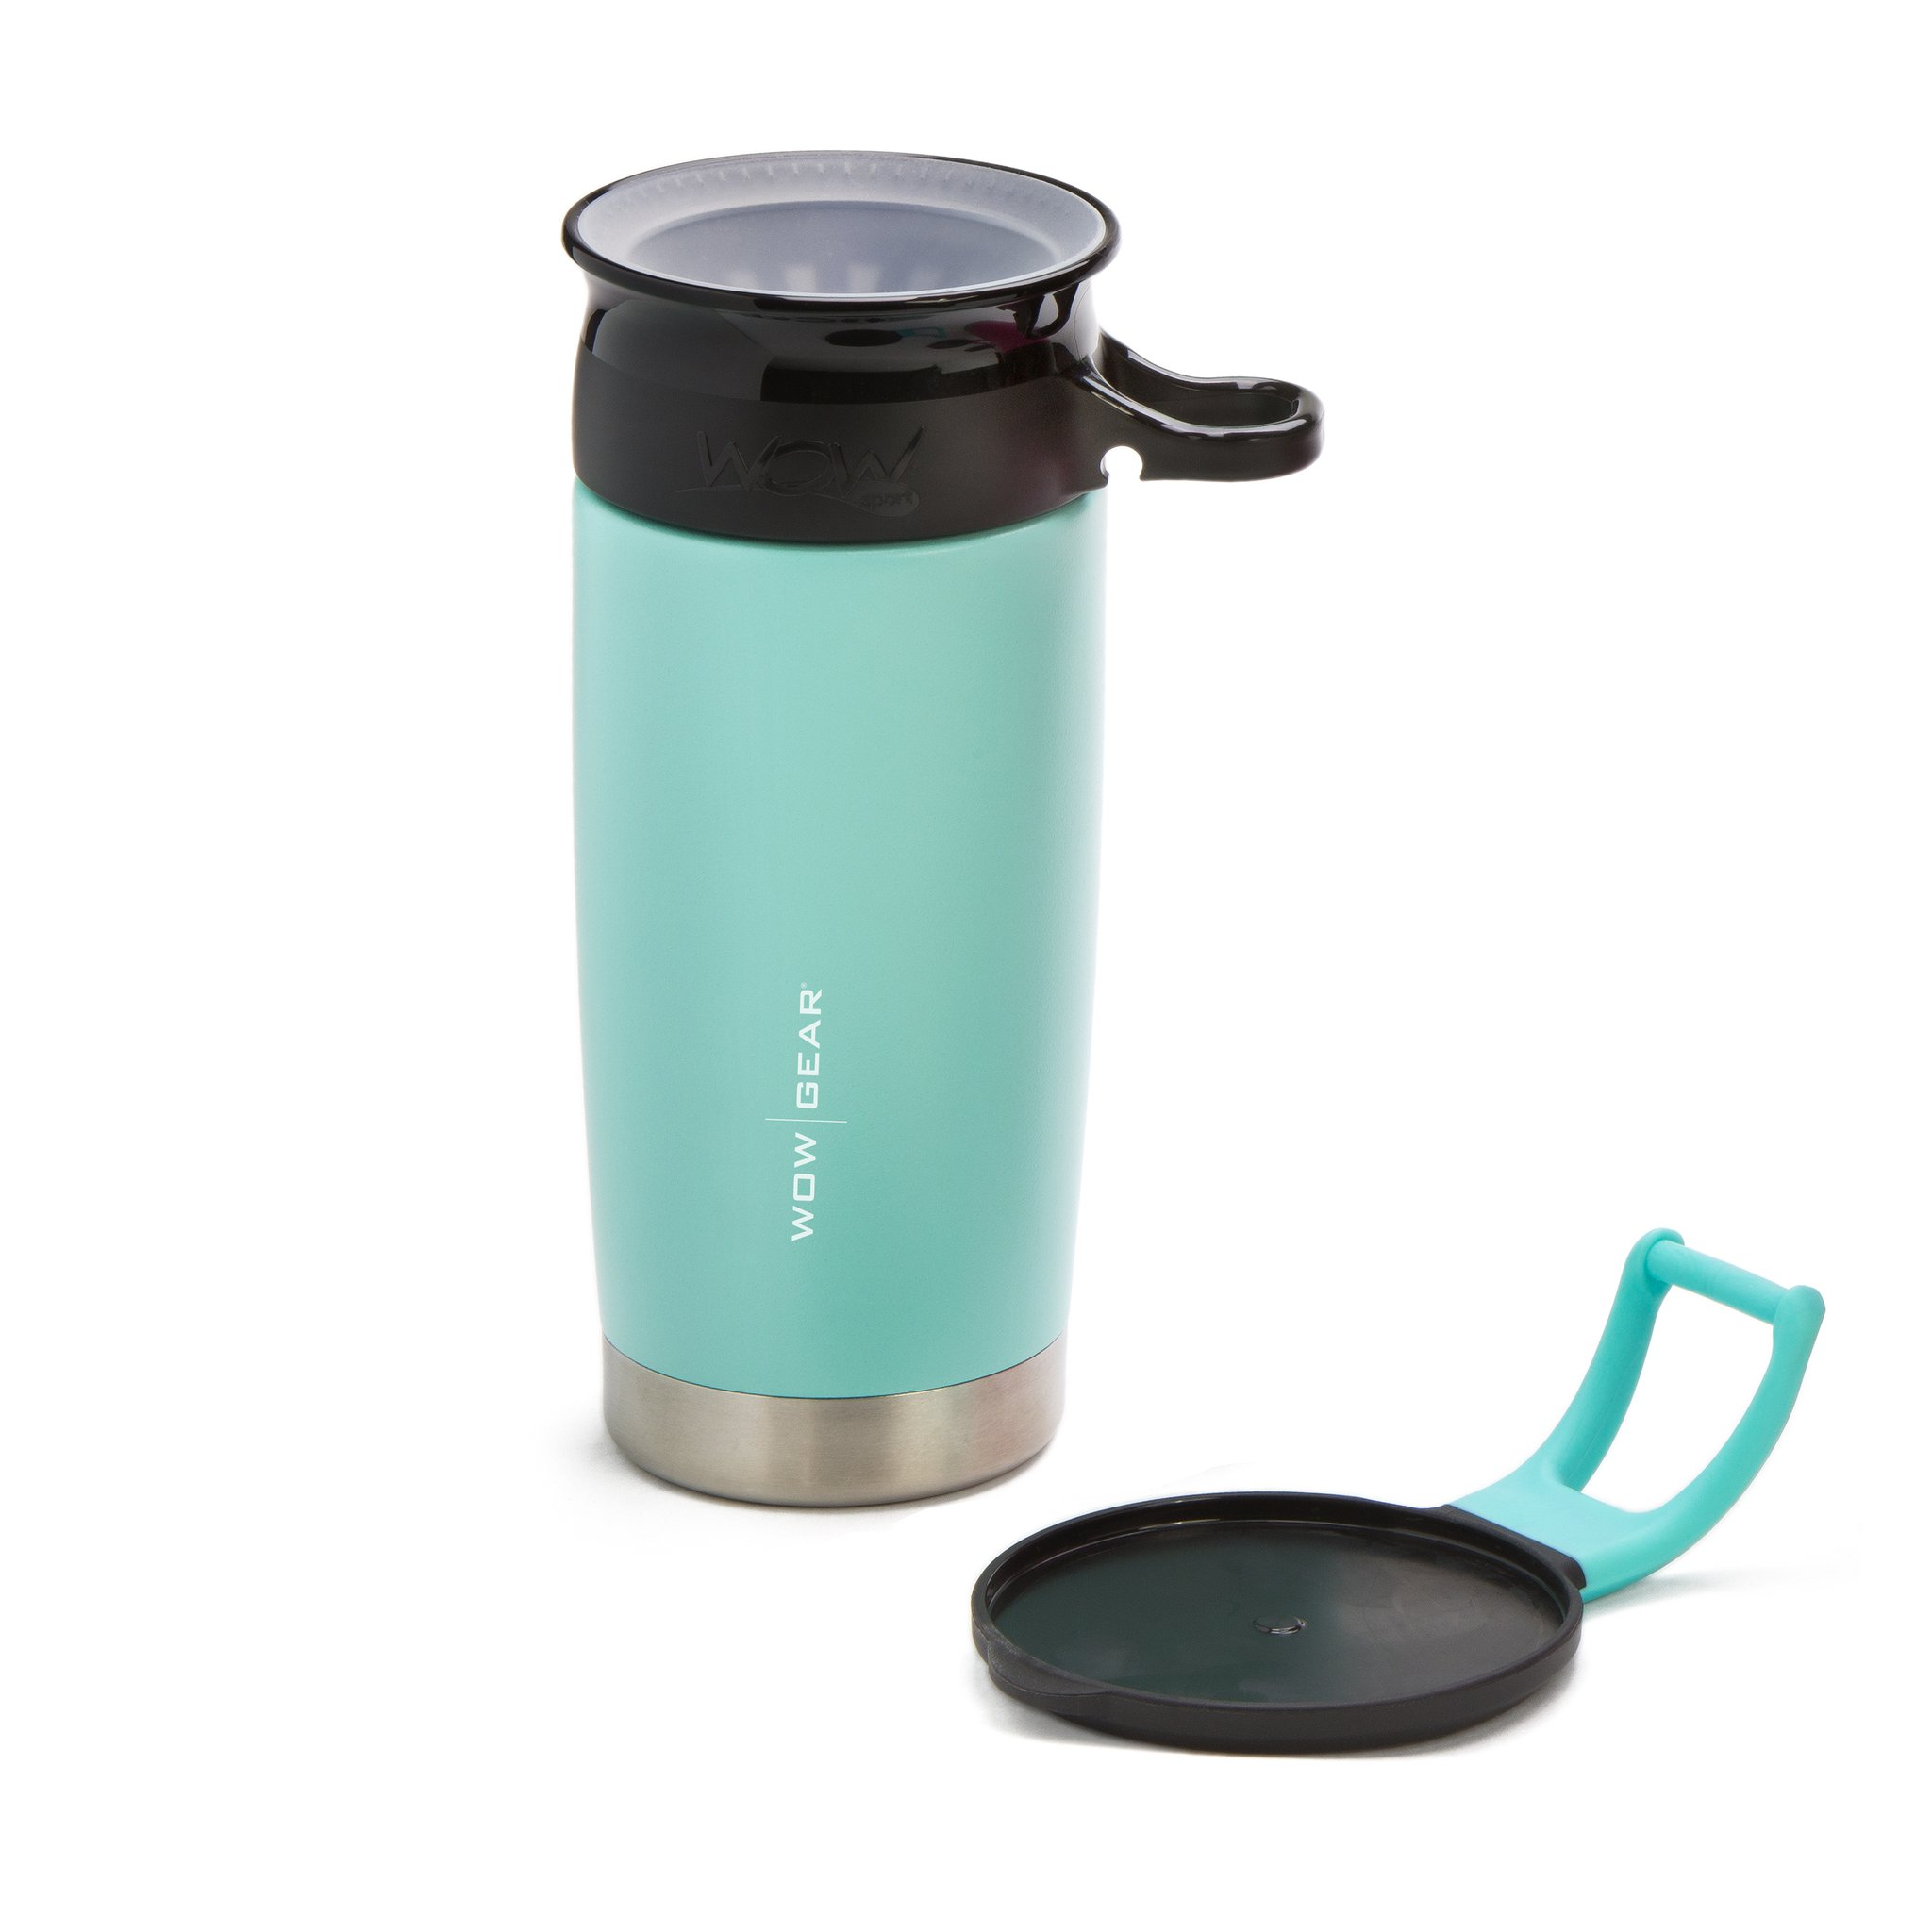 WOW Gear 360 Stainless Steel Cup, 13.5oz, Tu